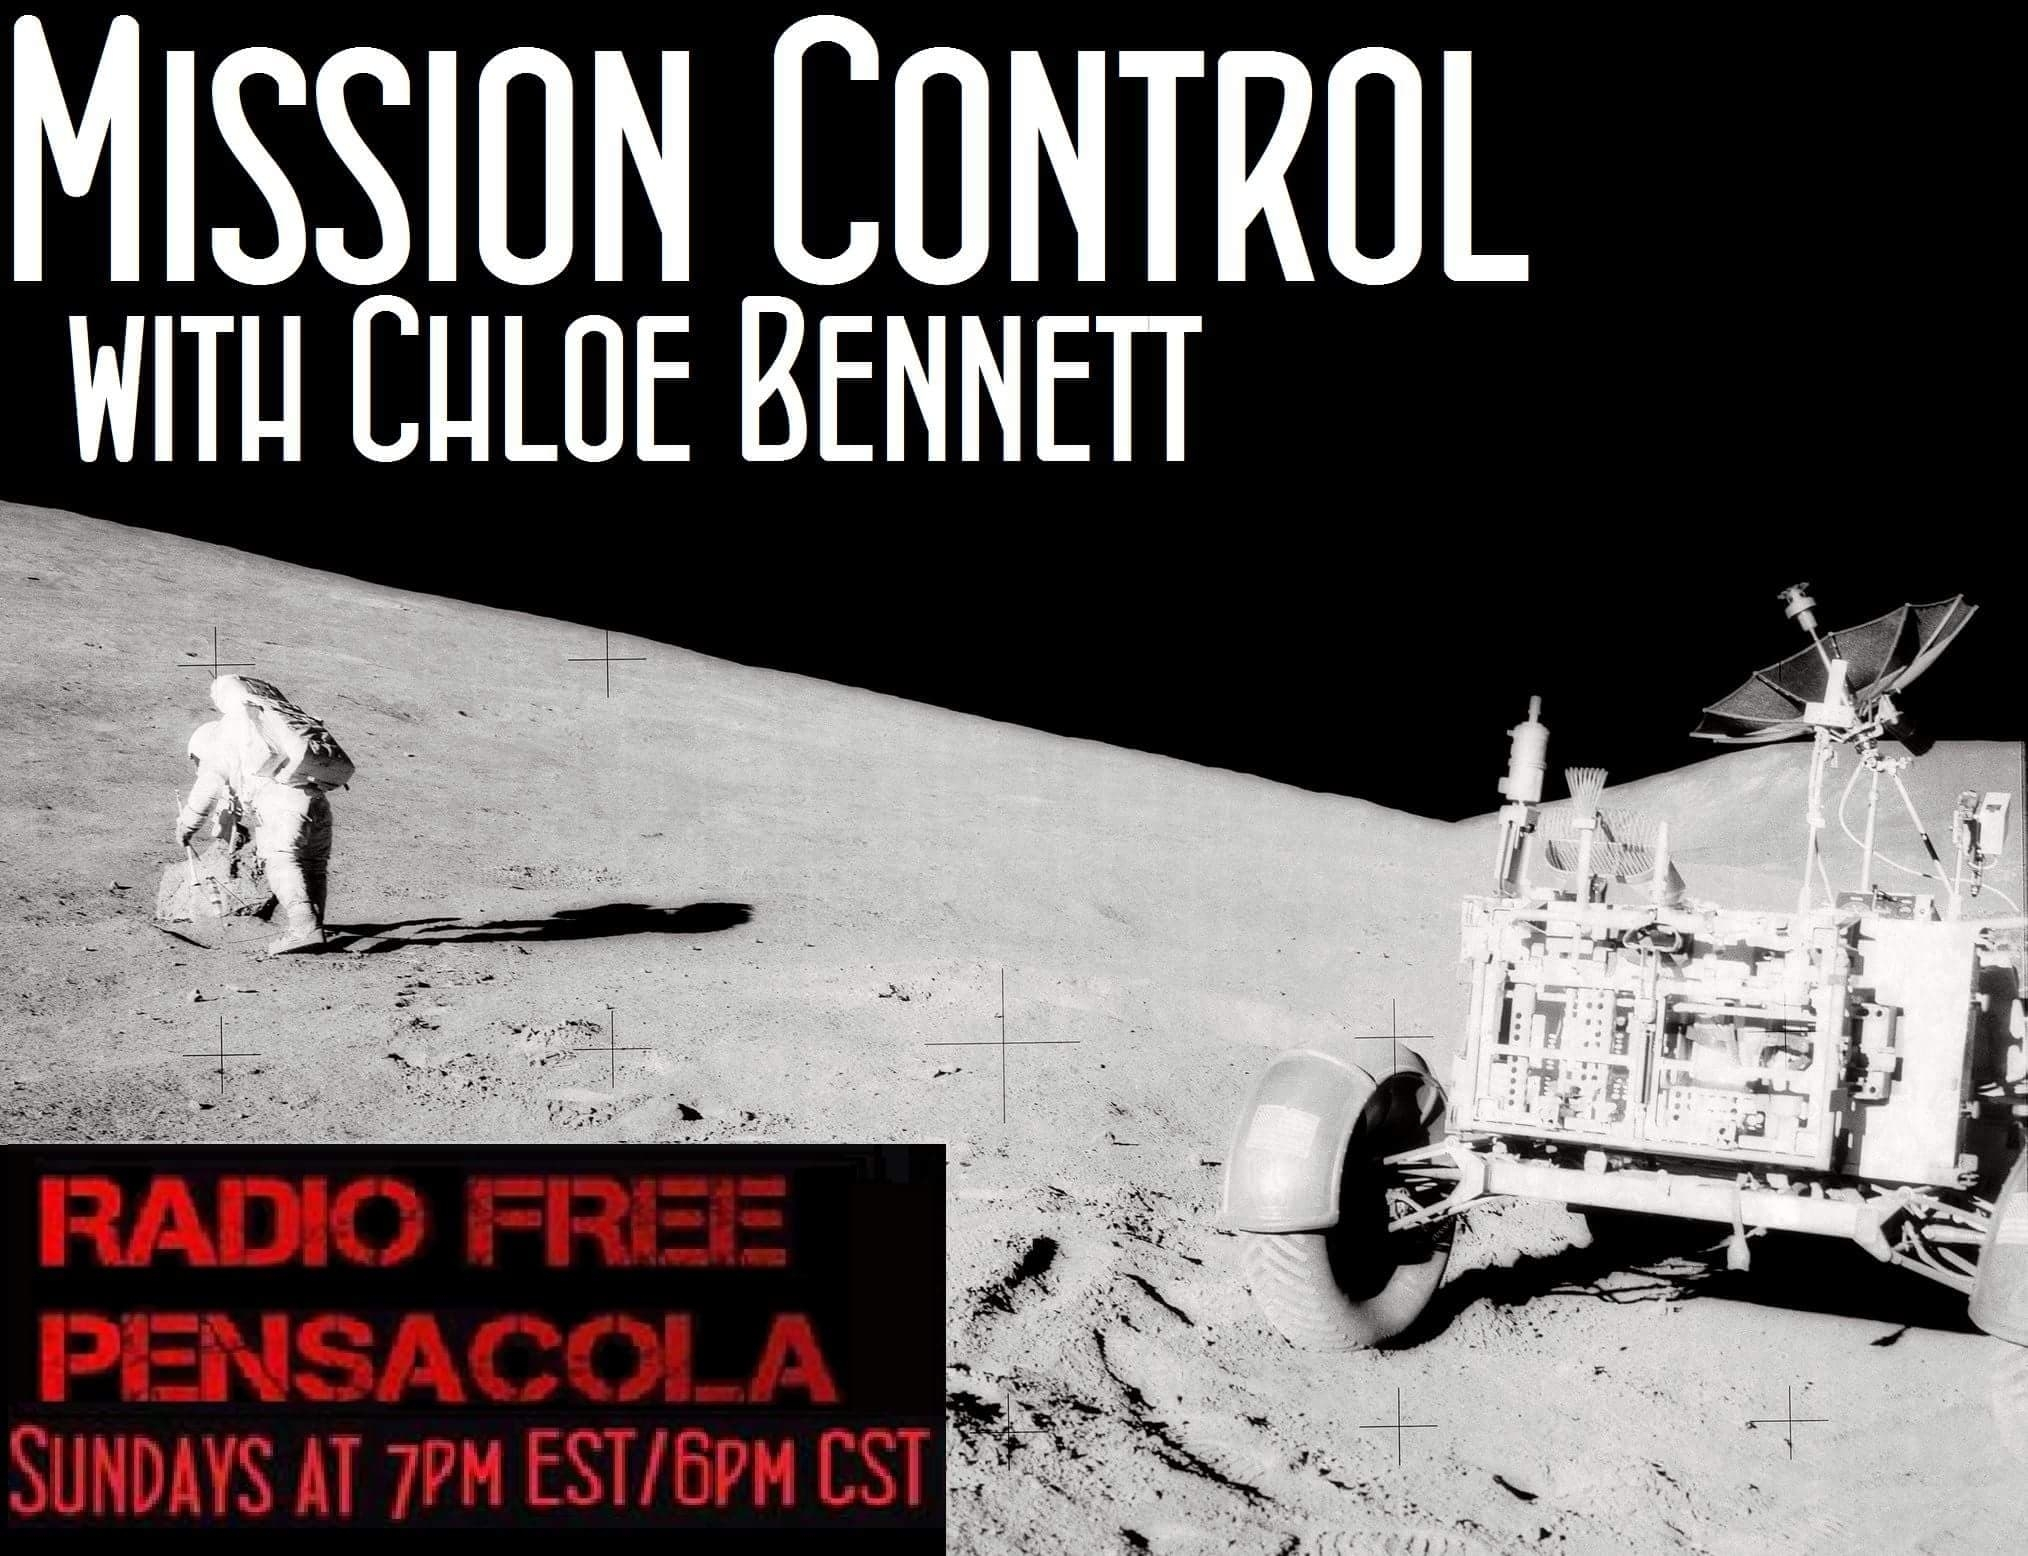 Mission Control with Chloe Bennett is your weekly source of new wave, alternative, post-punk, and more, airing Sundays, 7pm EST/6pm CST. Home of the Soviet Bloc and the HANG THE DJ: Weekly Smiths Pick.